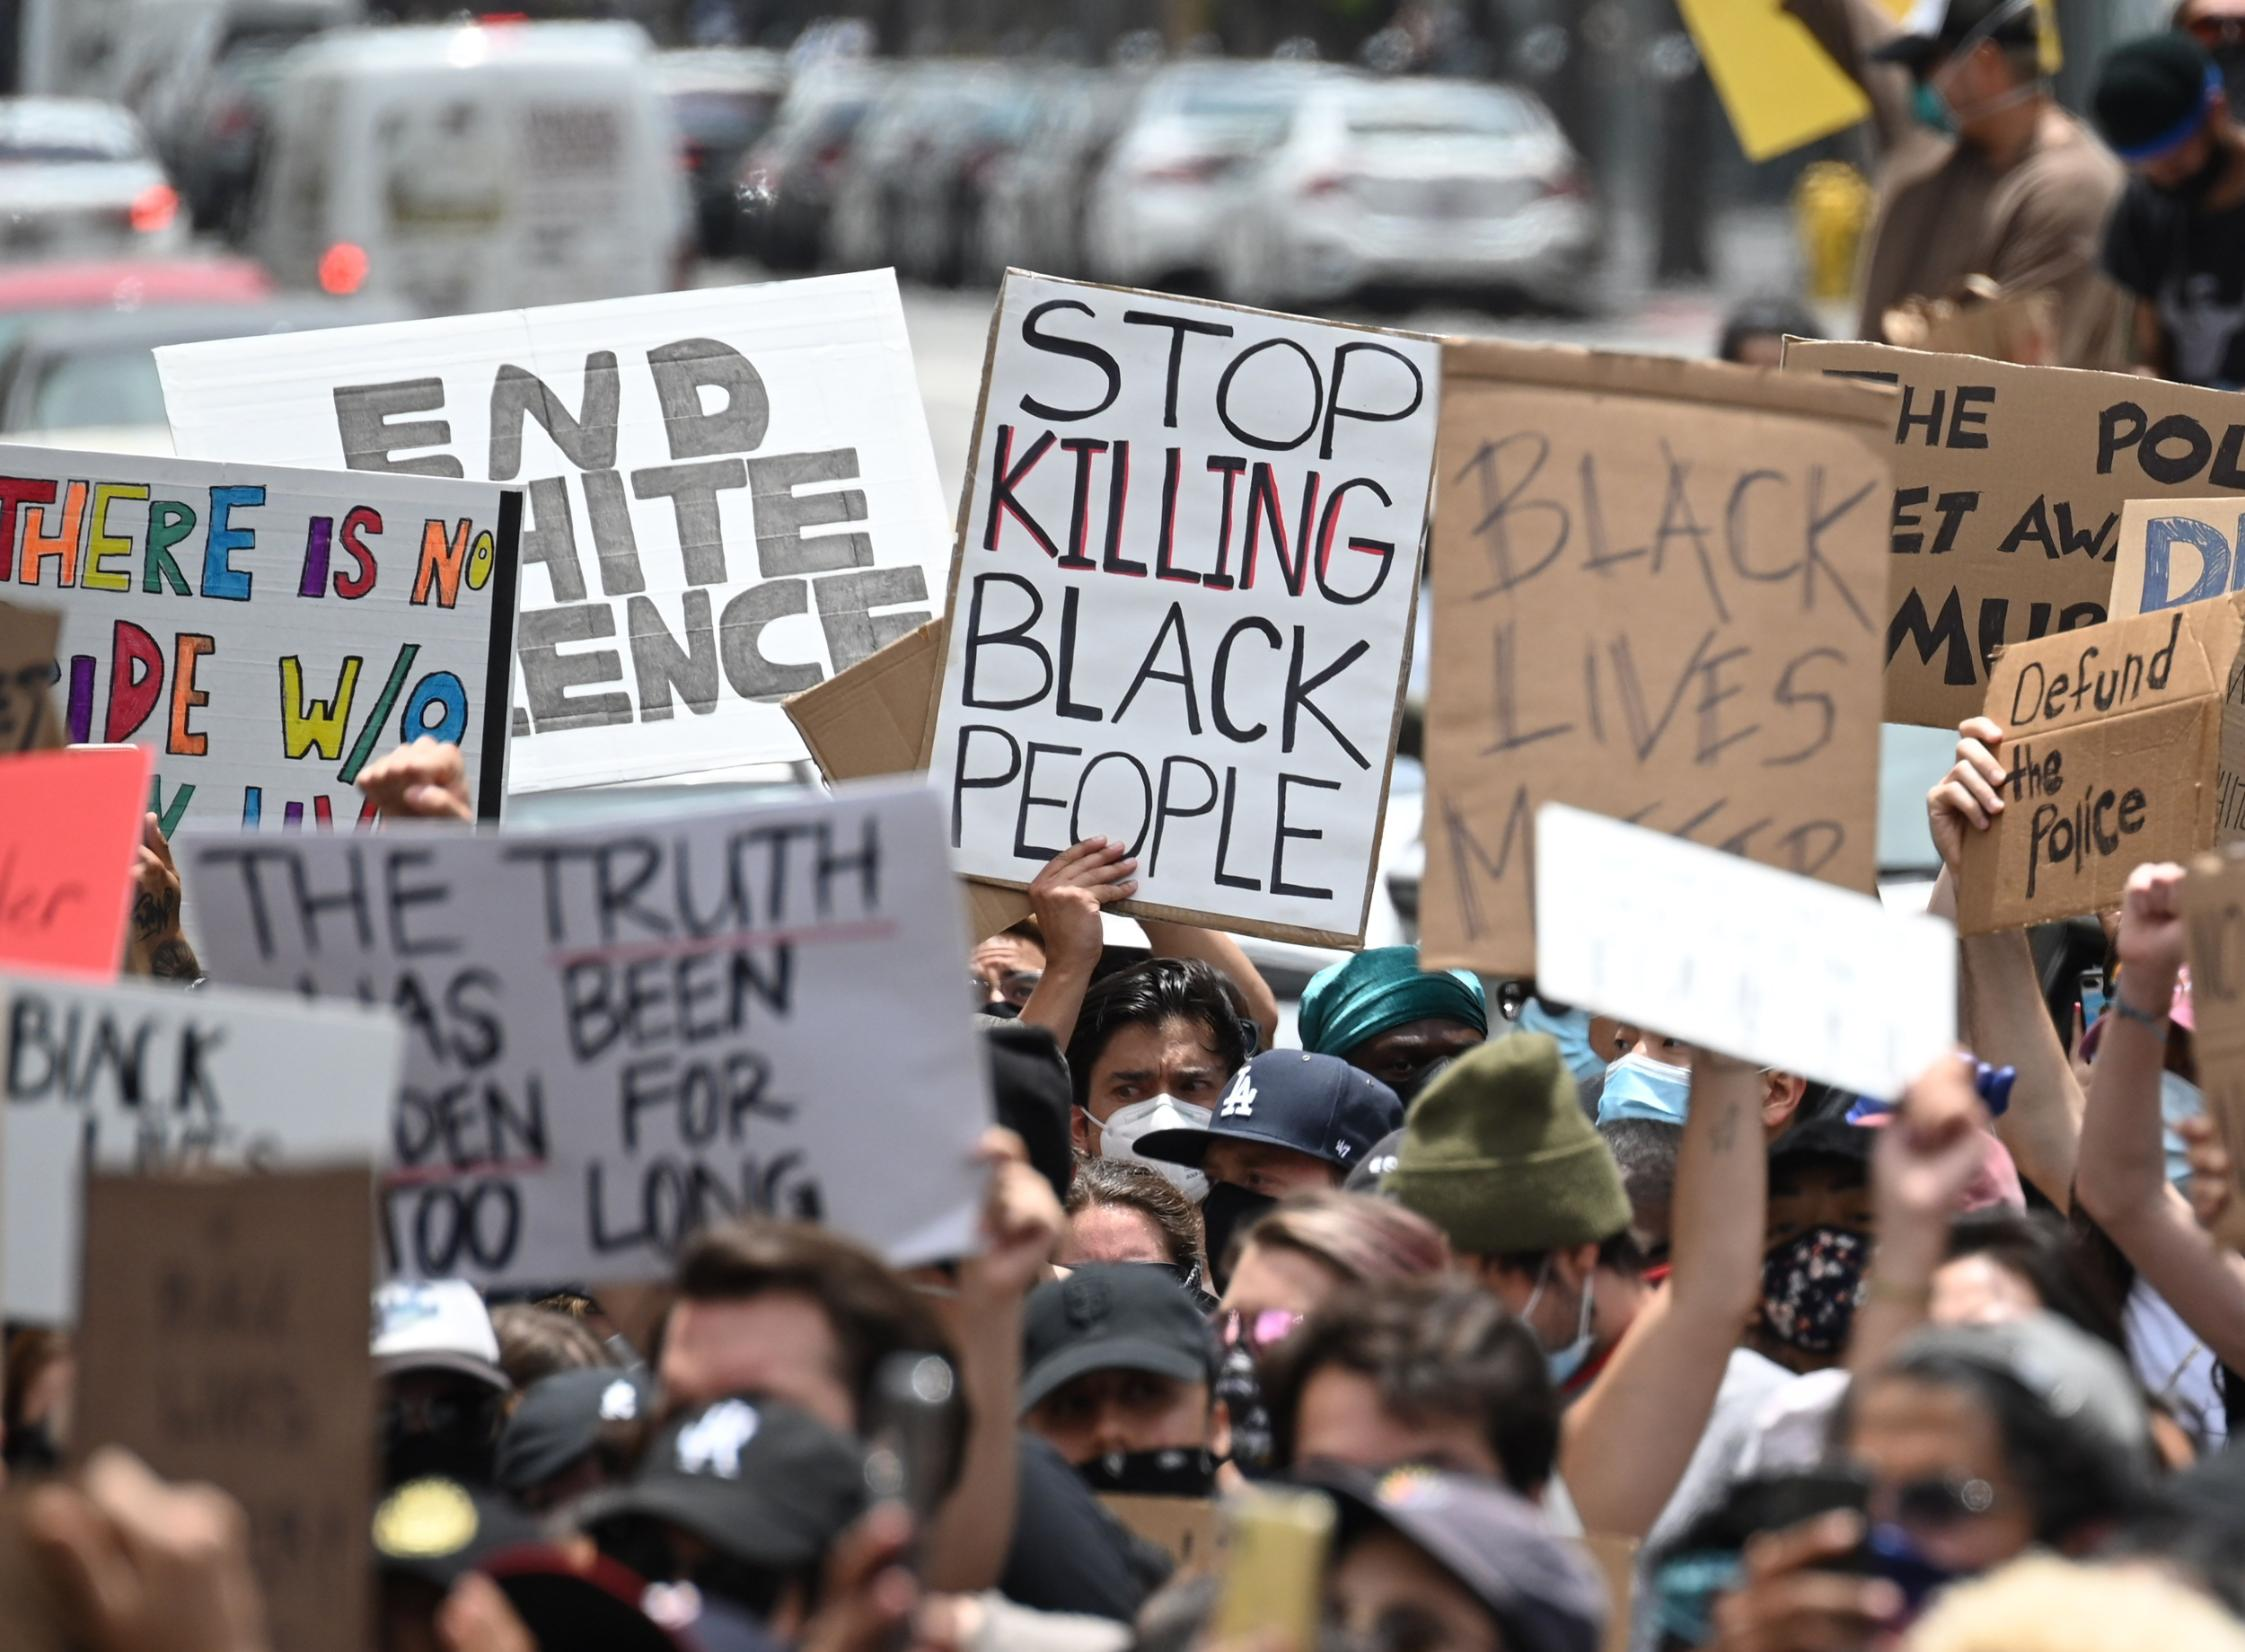 Here's why experts and lawmakers say you can't compare Black Lives Matter protesters to the US Capitol mob